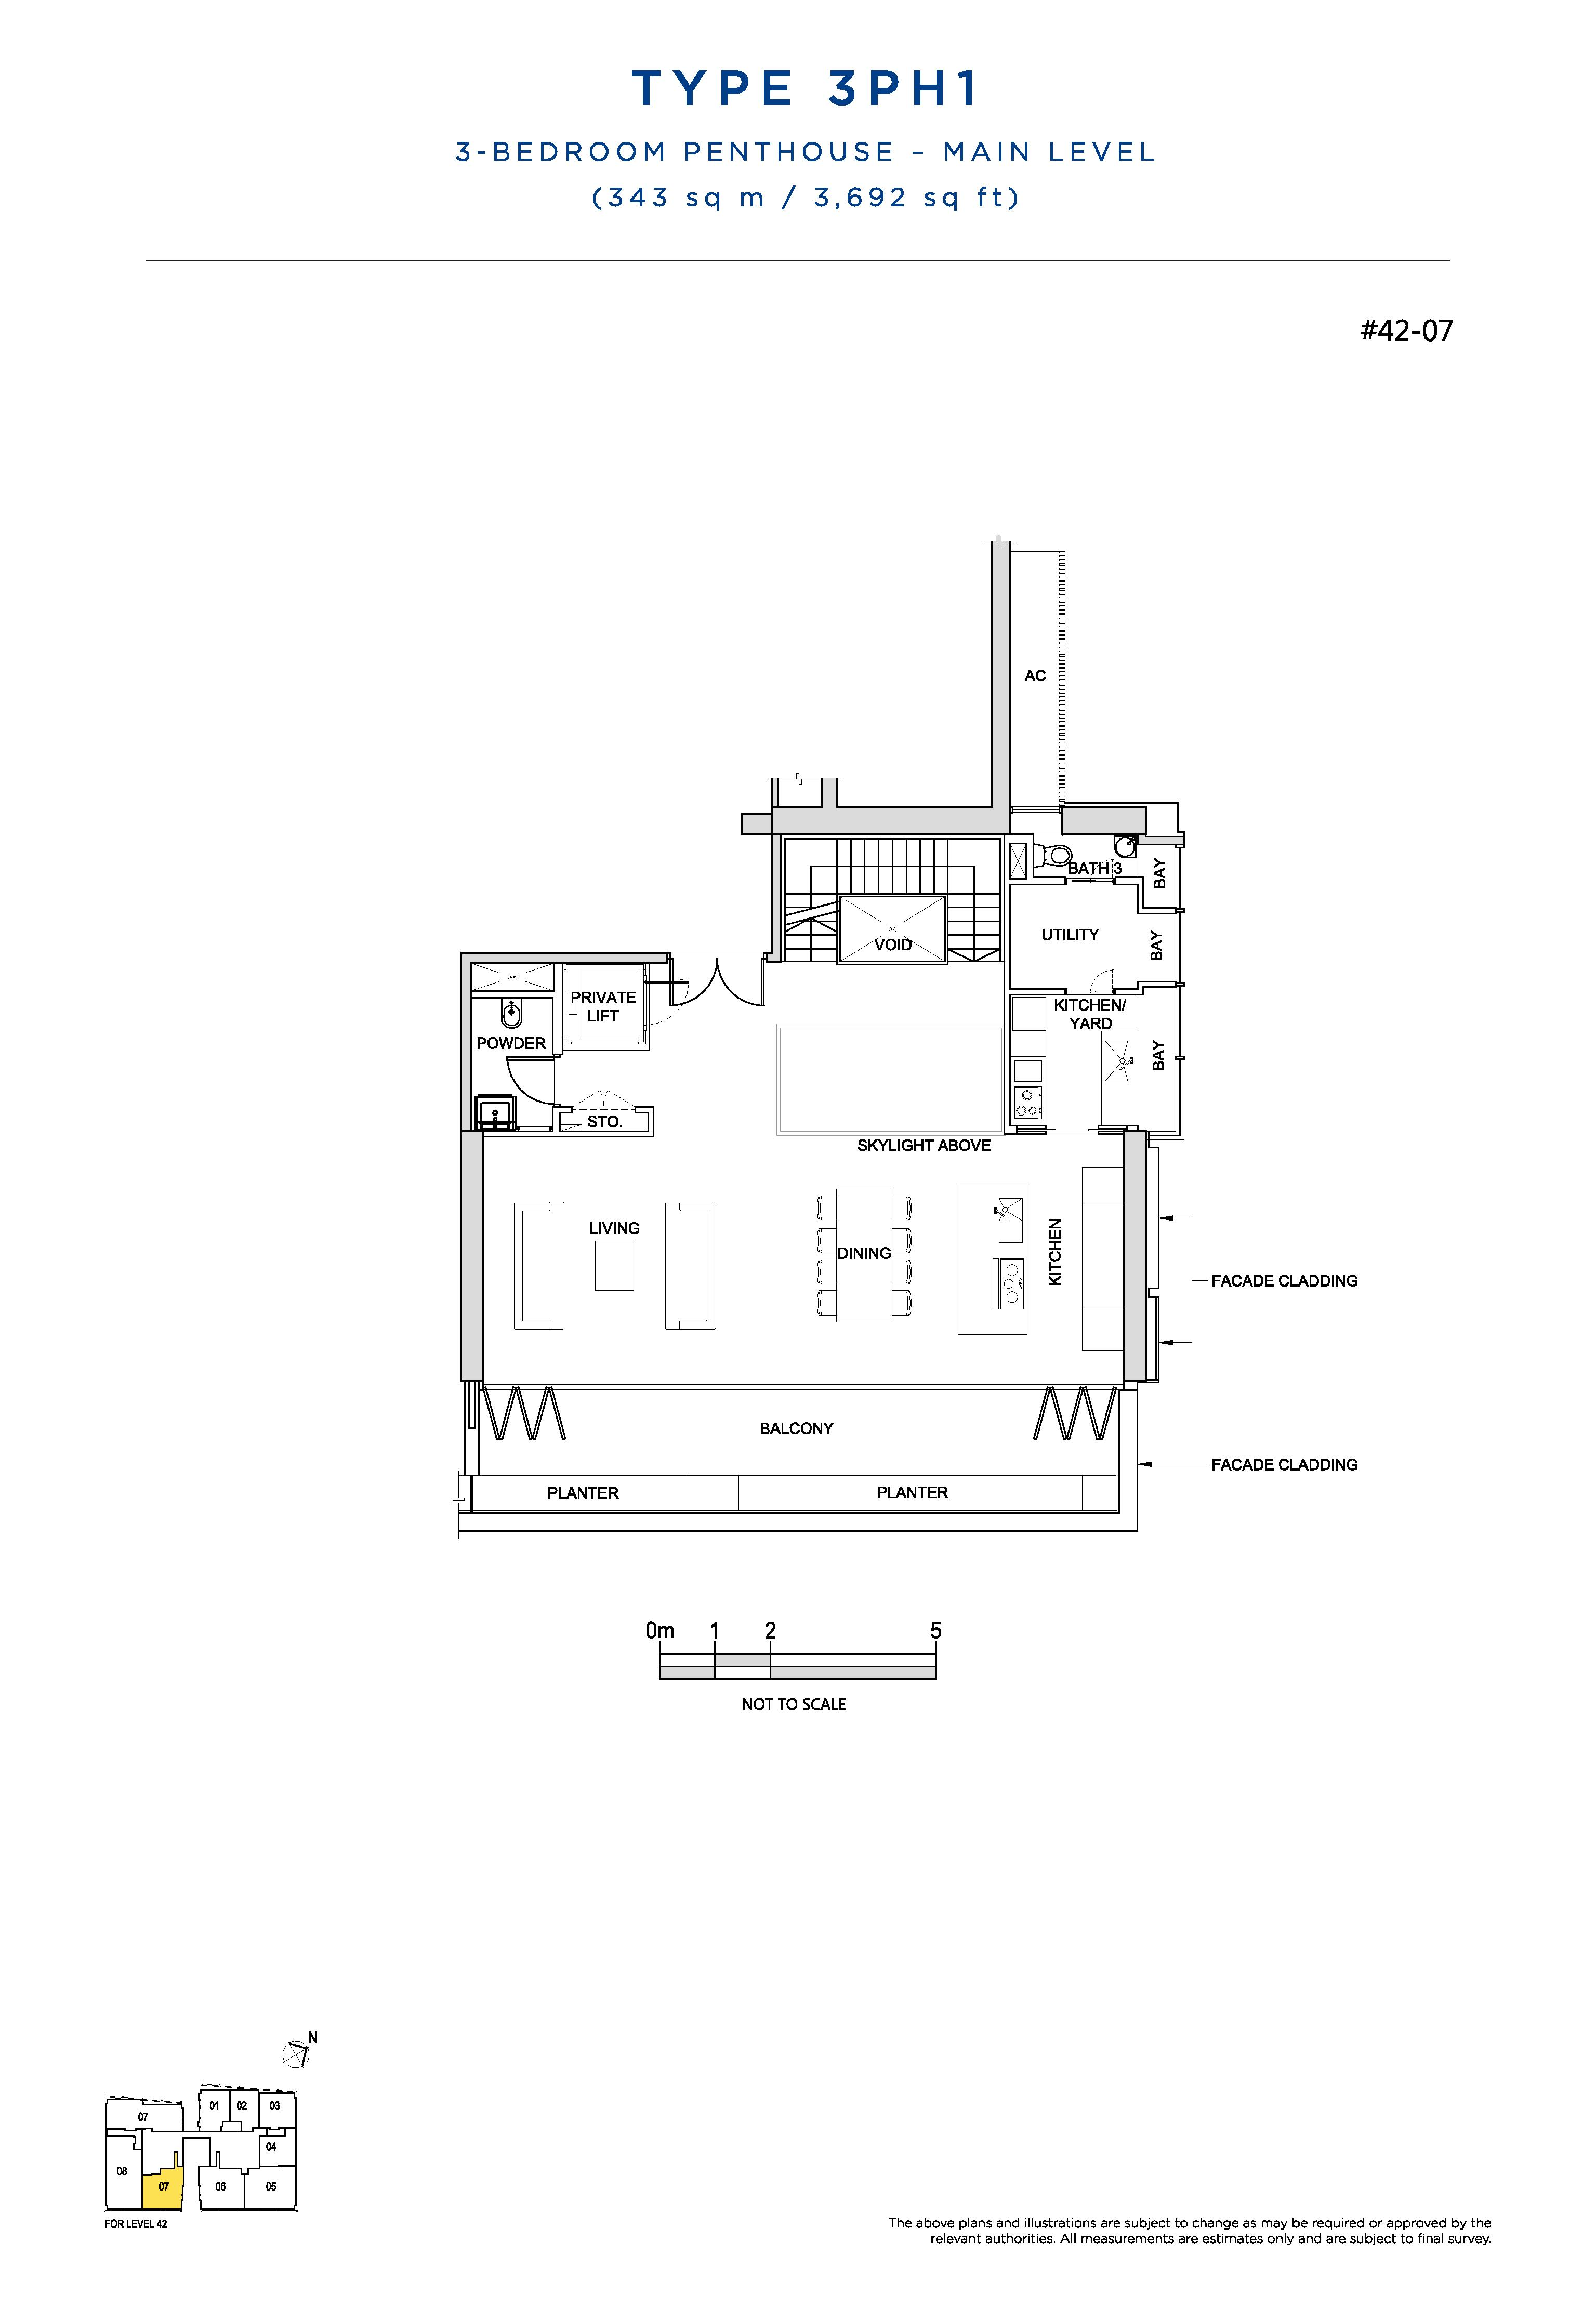 South Beach Residences 3 Bedroom Penthouse Floor Plans Type 3PH1(Main Level)